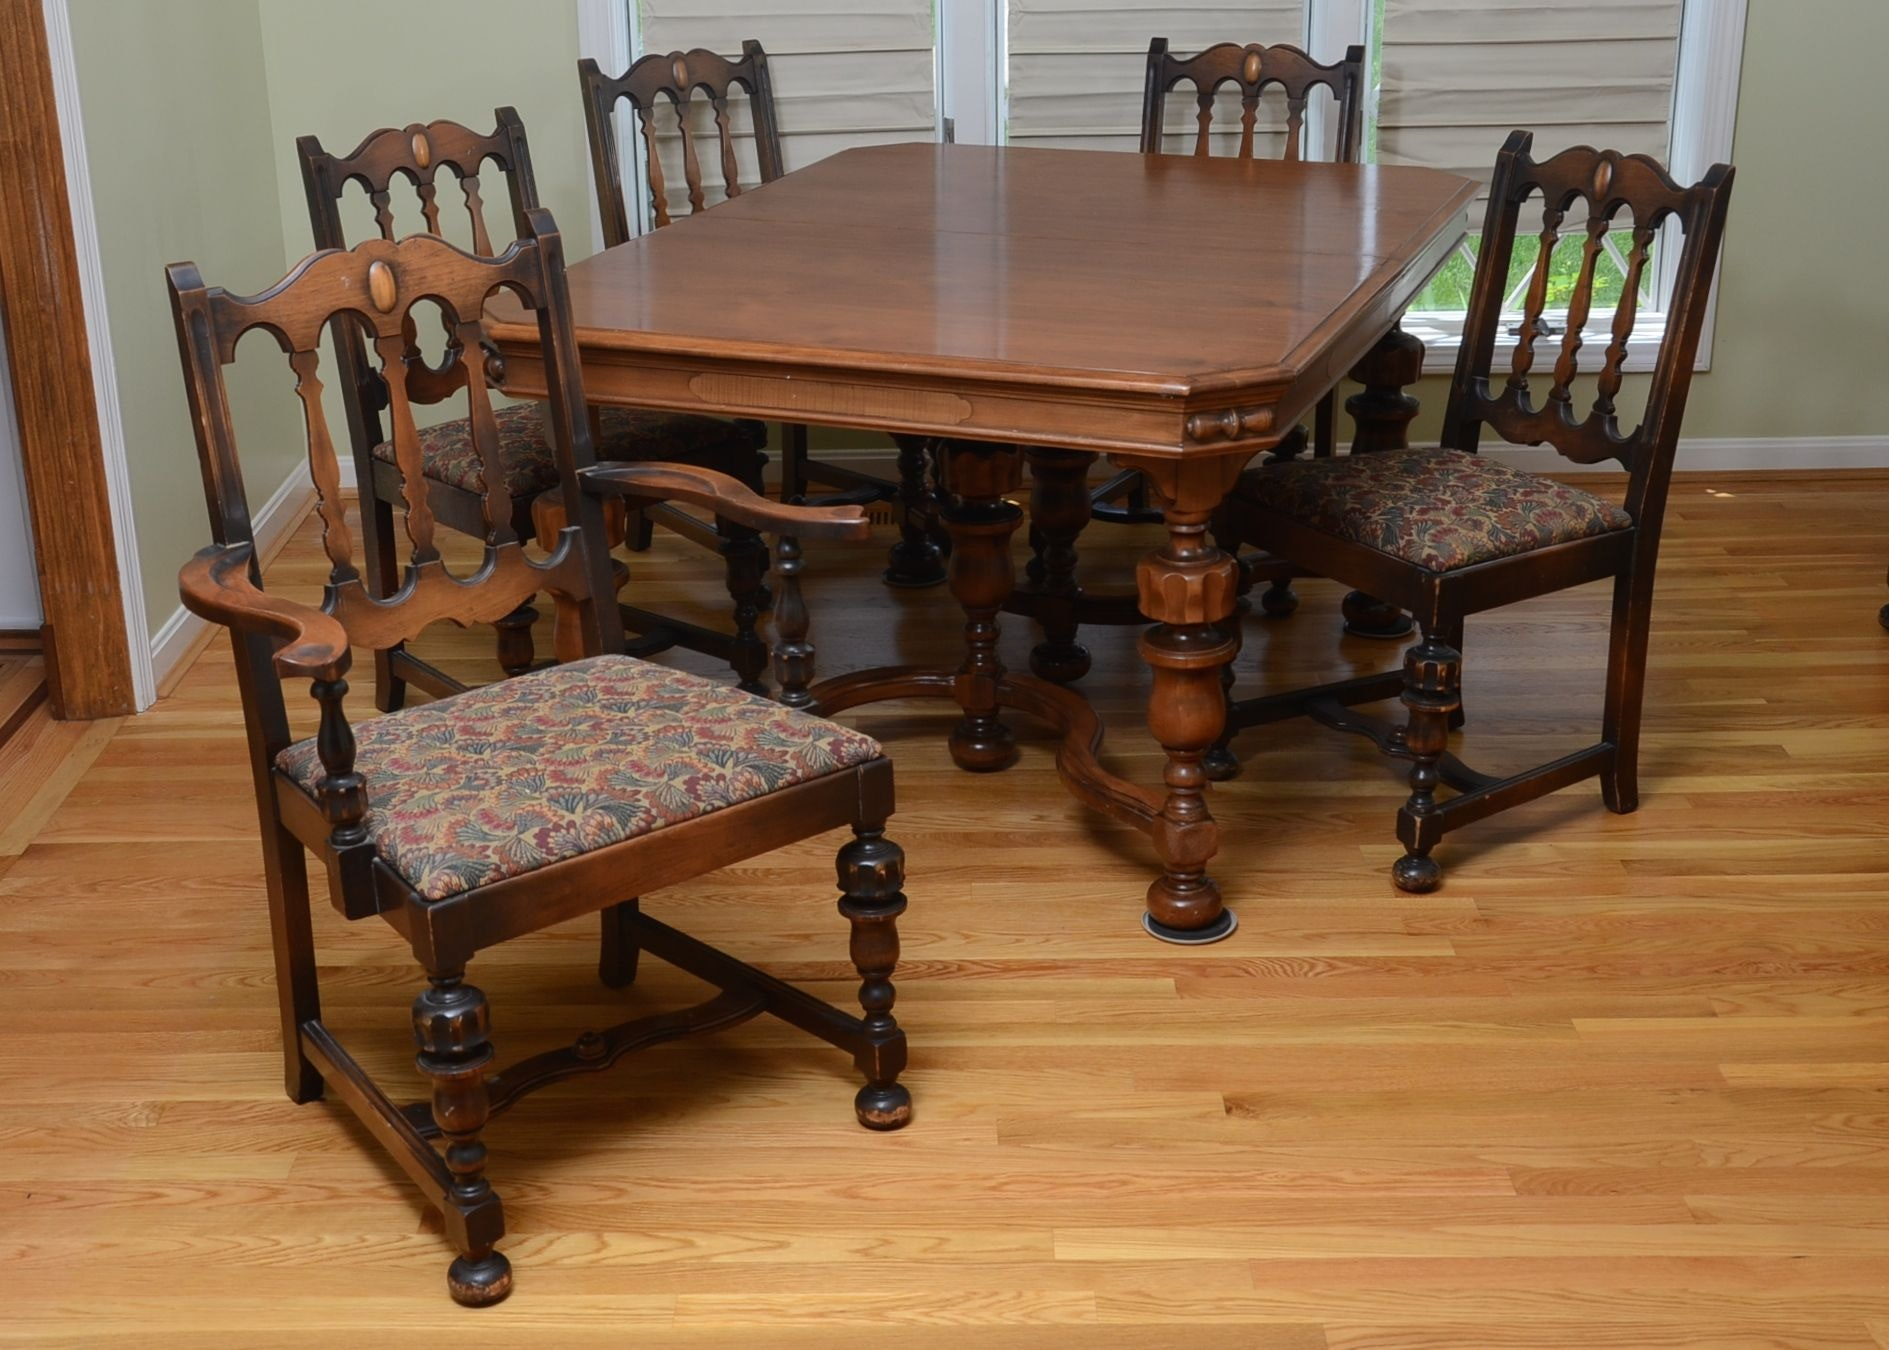 Jacobean Style Dining Room Table and Chairs EBTH : DSC0706jpgixlibrb 11 from www.ebth.com size 880 x 880 jpeg 157kB